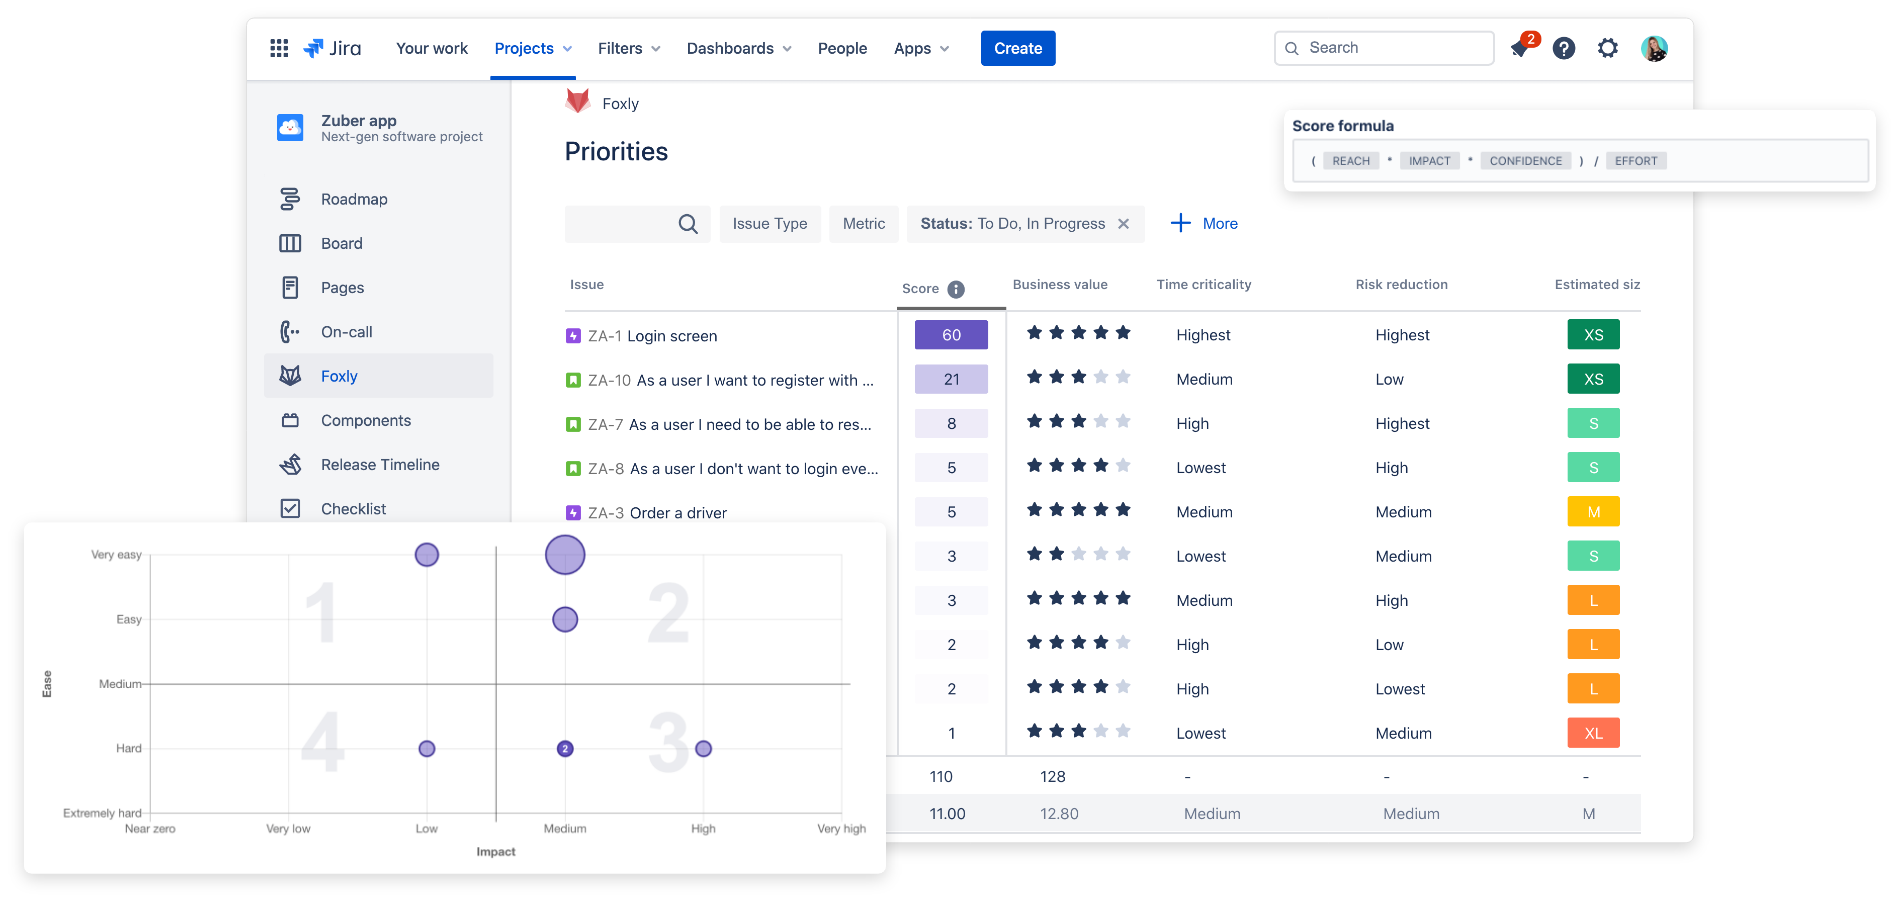 Foxly is a Jira backlog prioritization app to help you better manage your backlog